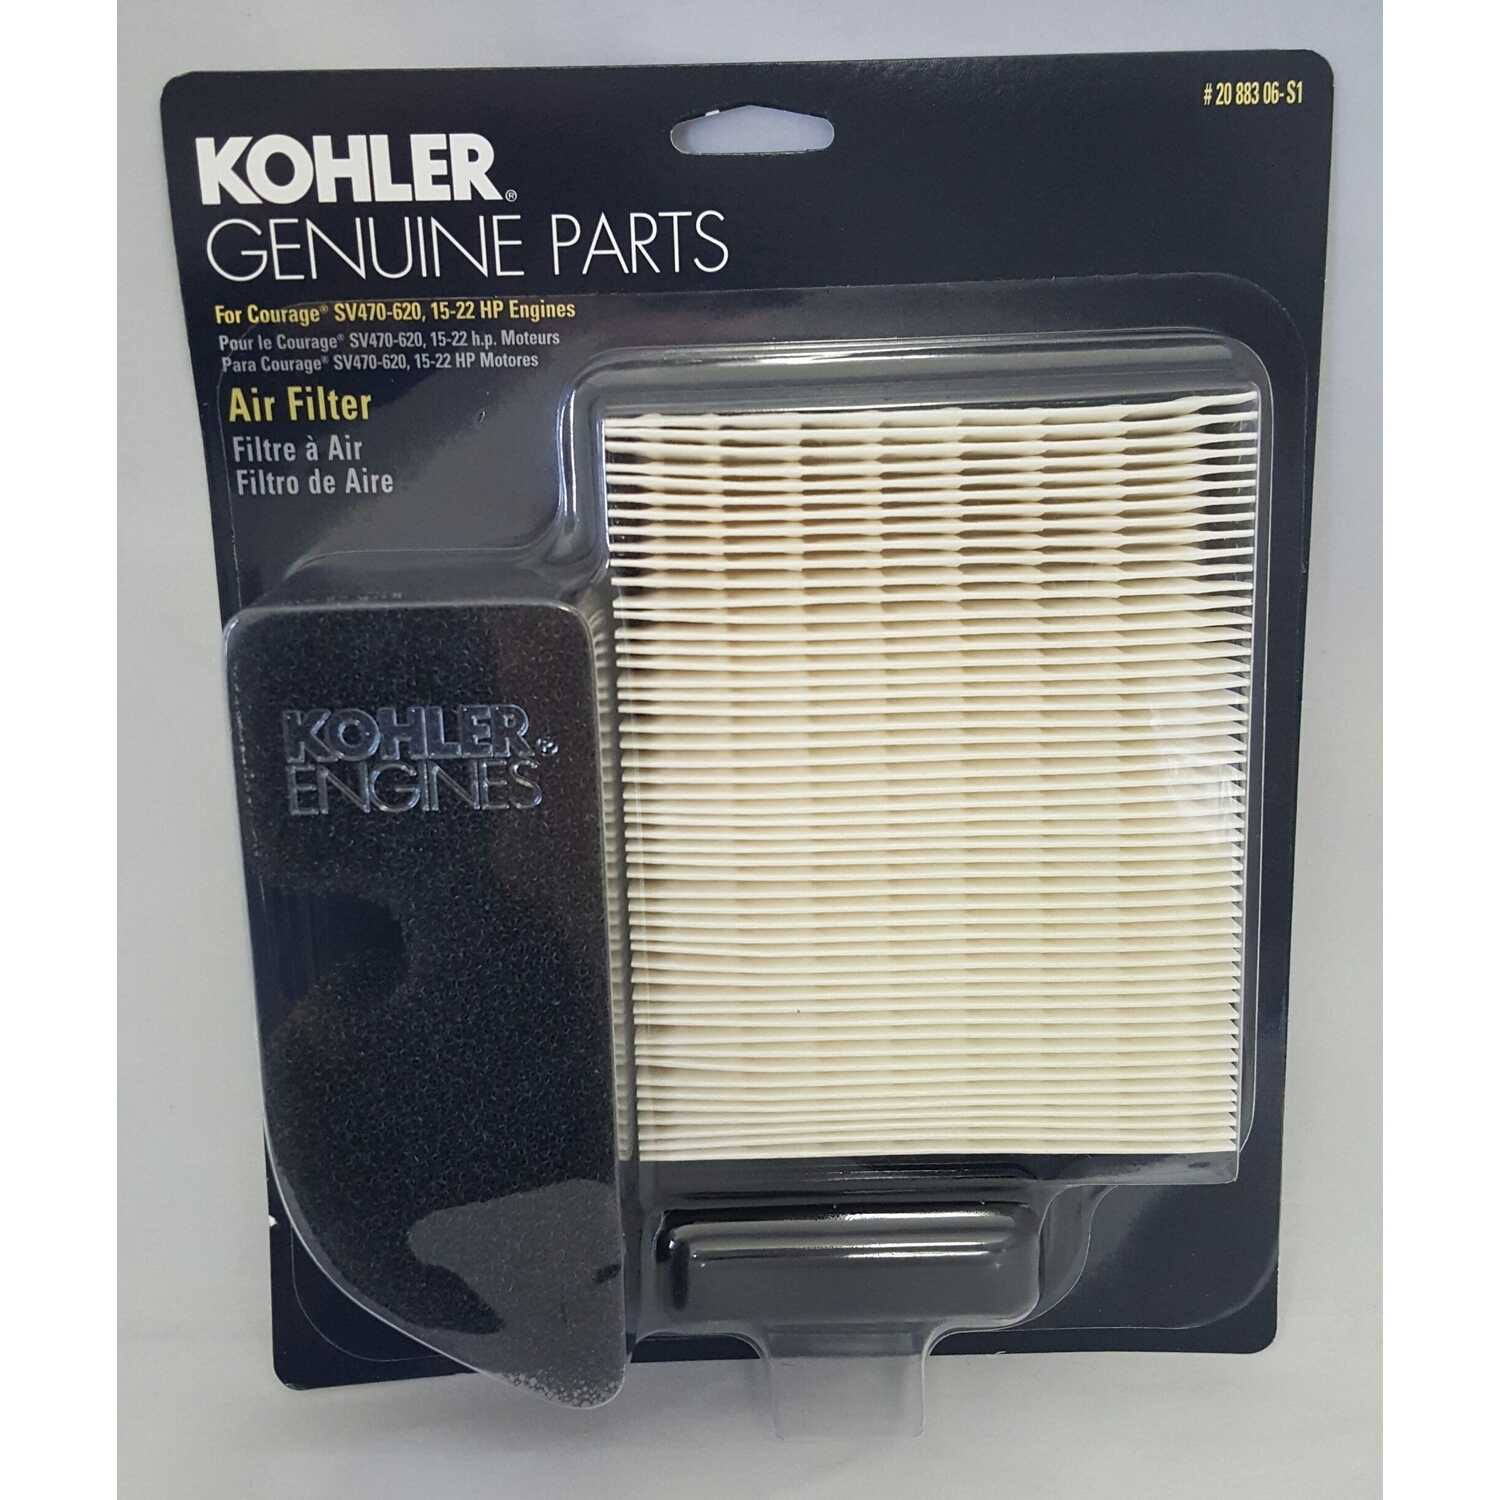 Kohler  Small Engine Air Filter  For Courage Single SV470-620